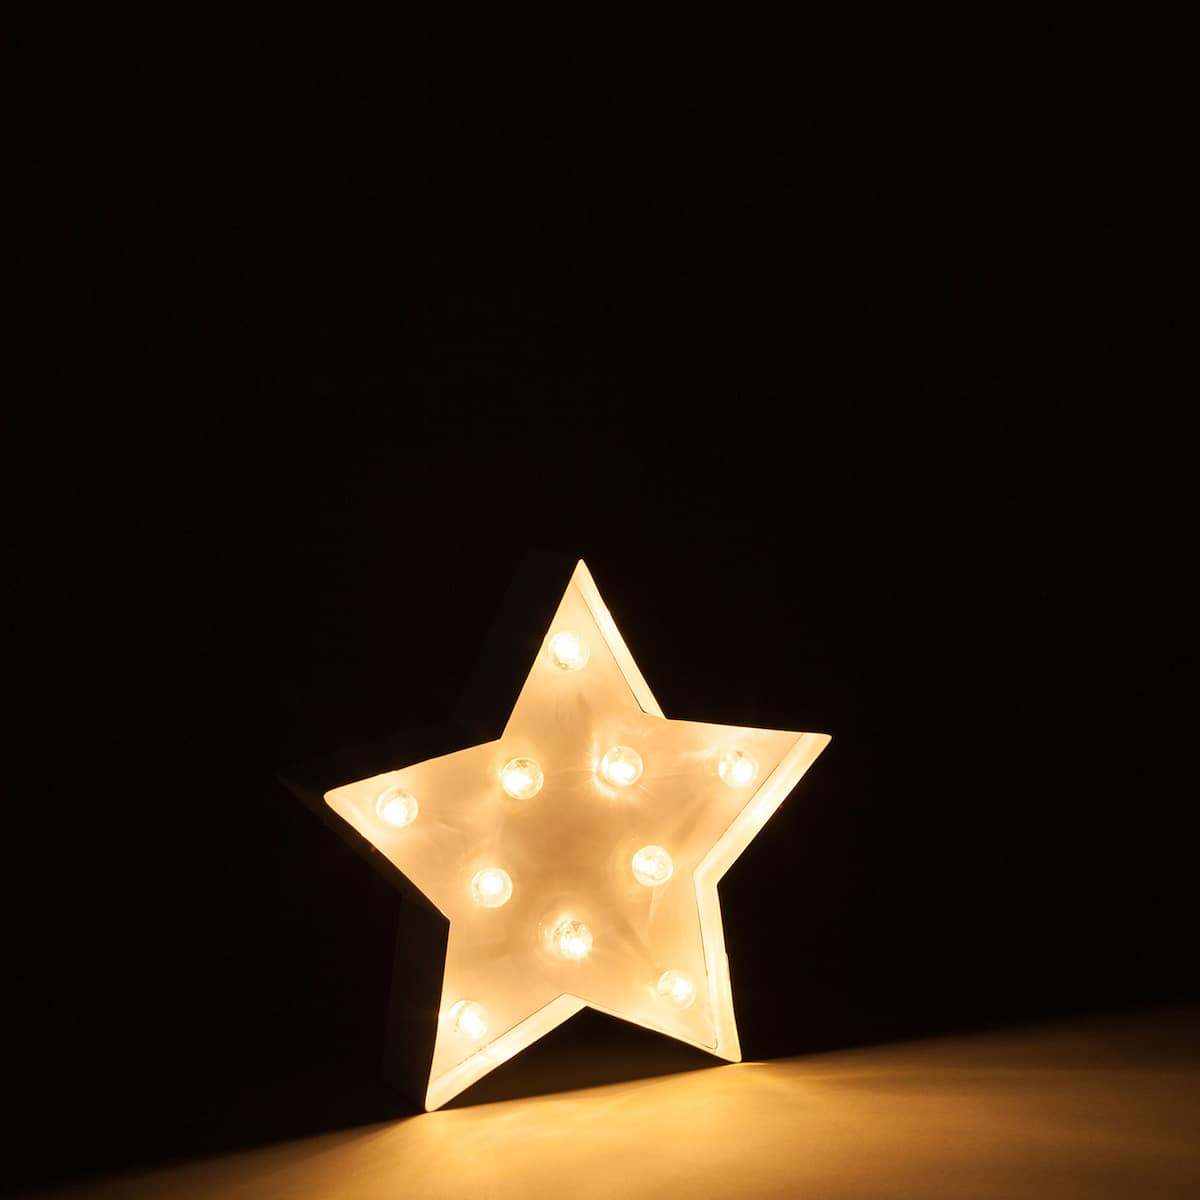 star shaped lighting. + Image 2 Of The Product Star-shaped Lamp Star Shaped Lighting F